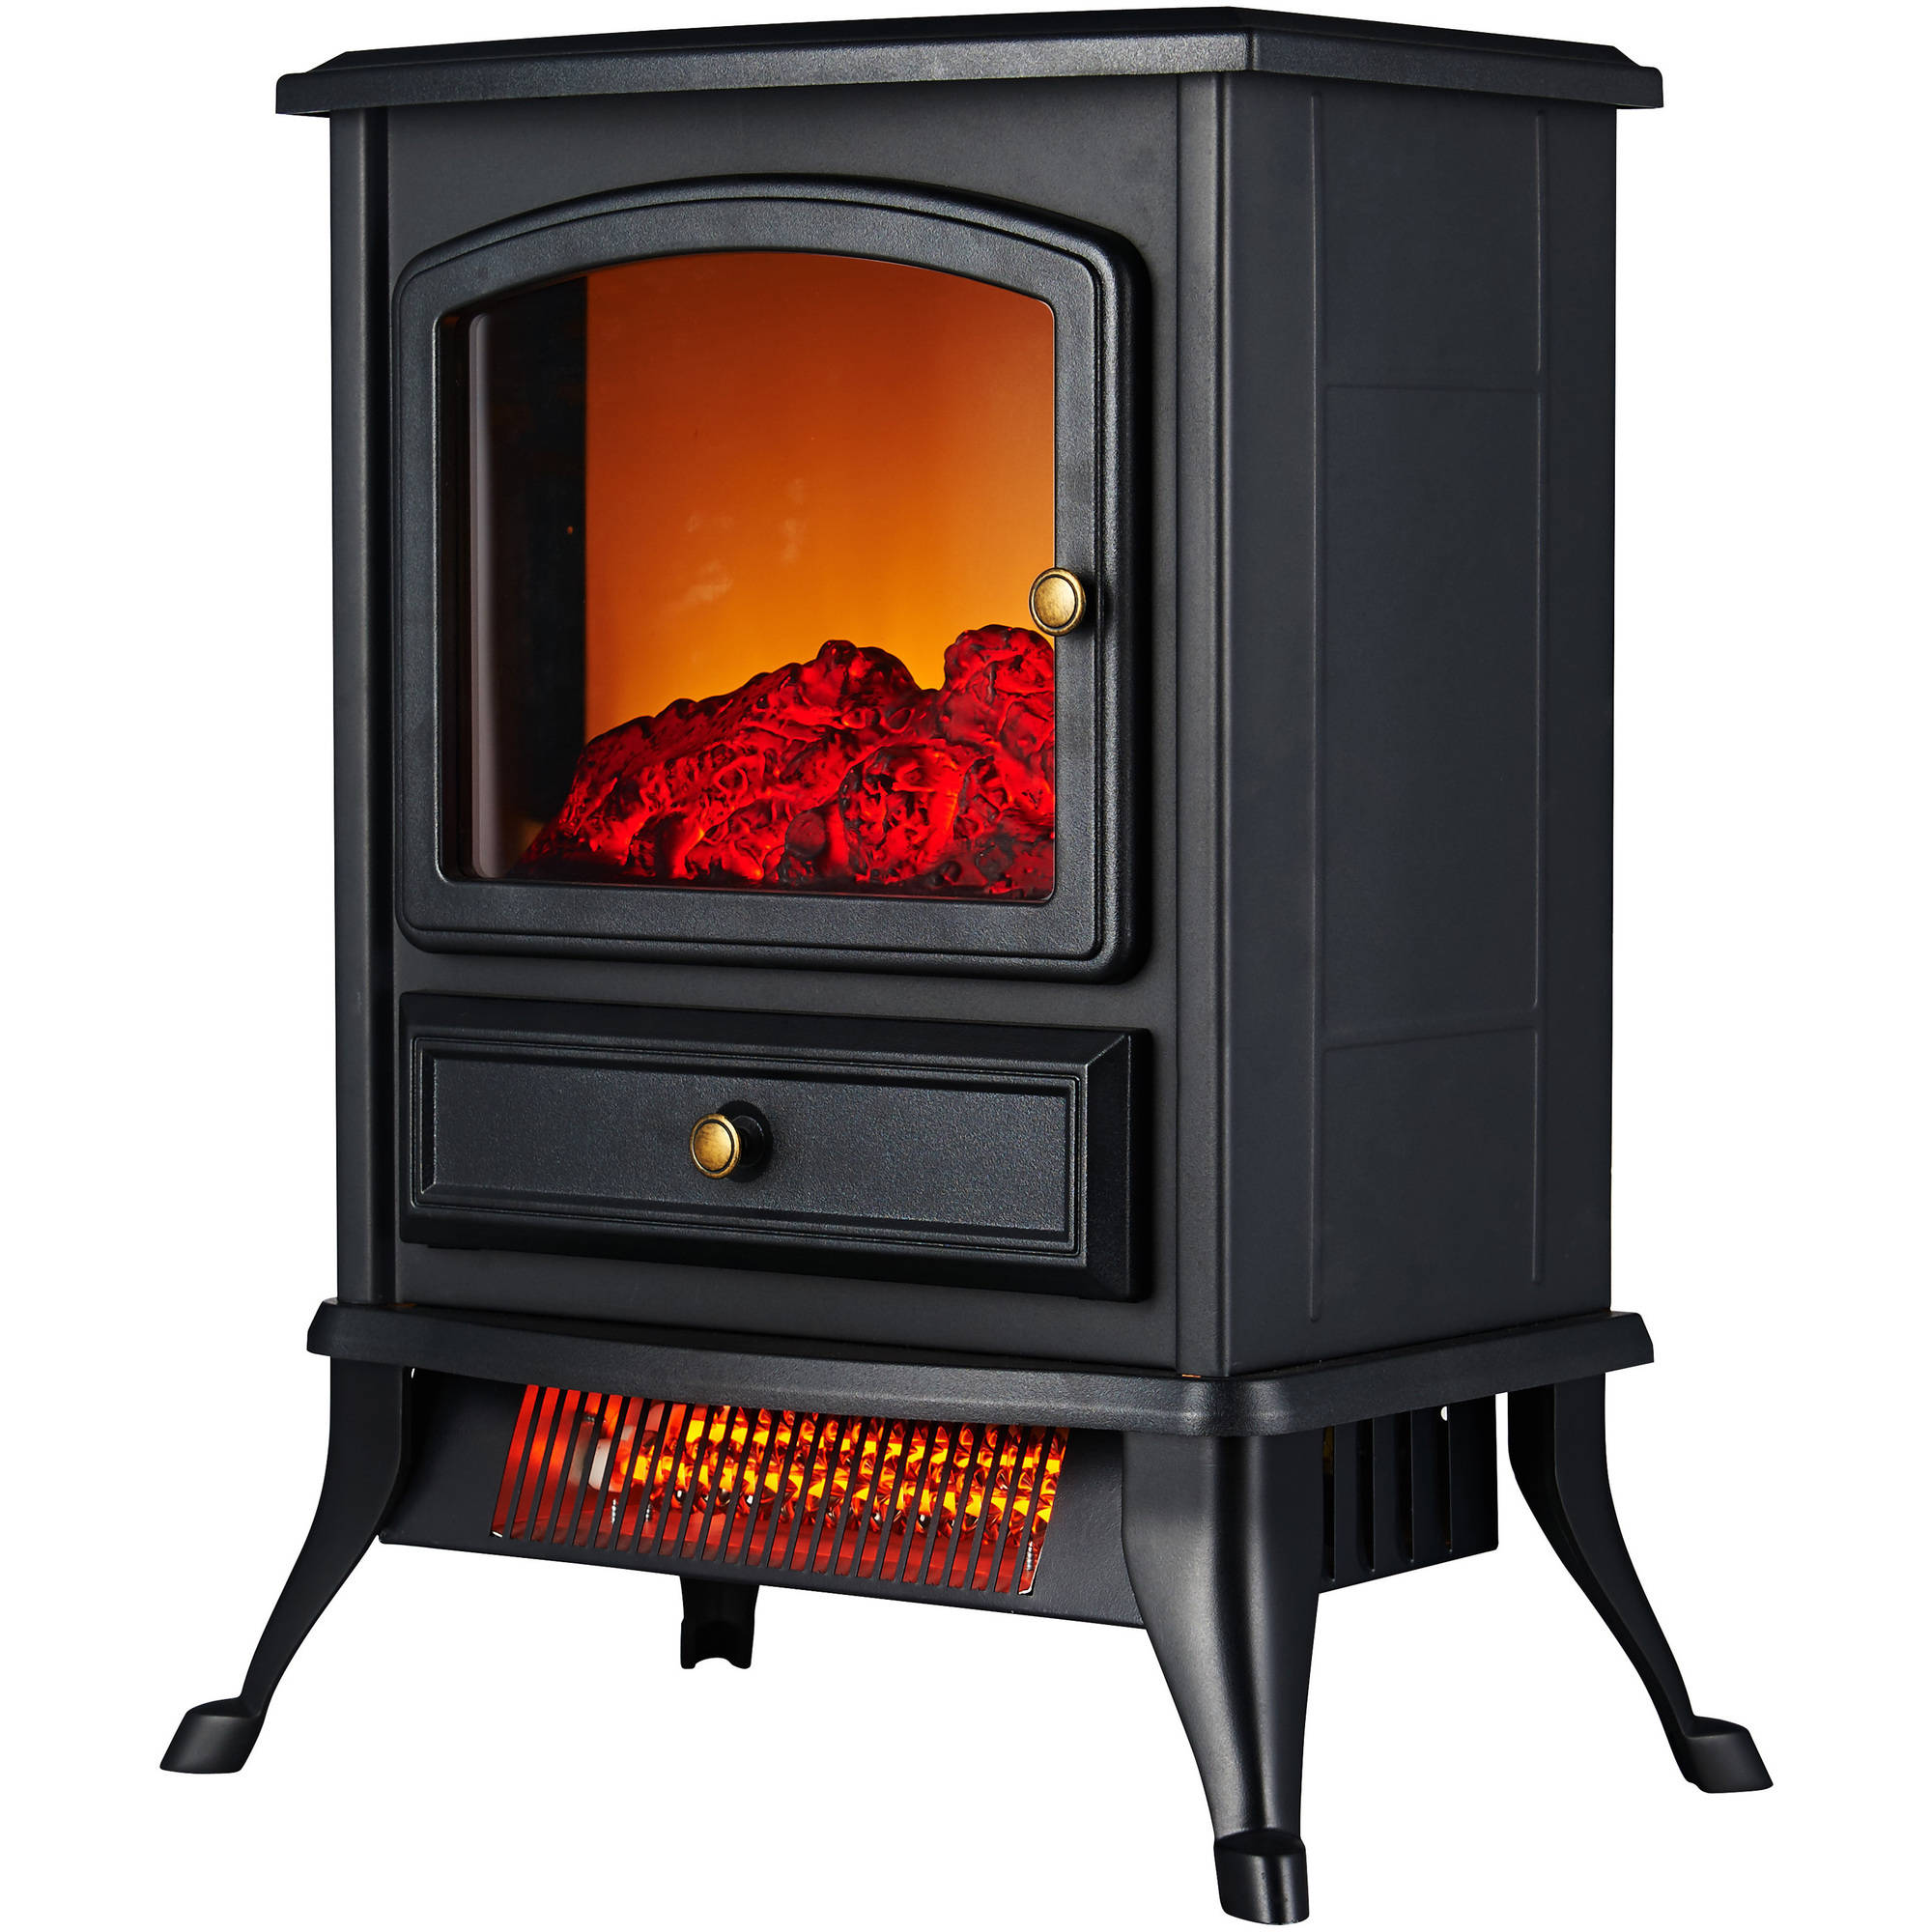 Warm Living Portable Infrared Quartz Home Fireplace Stove Heater